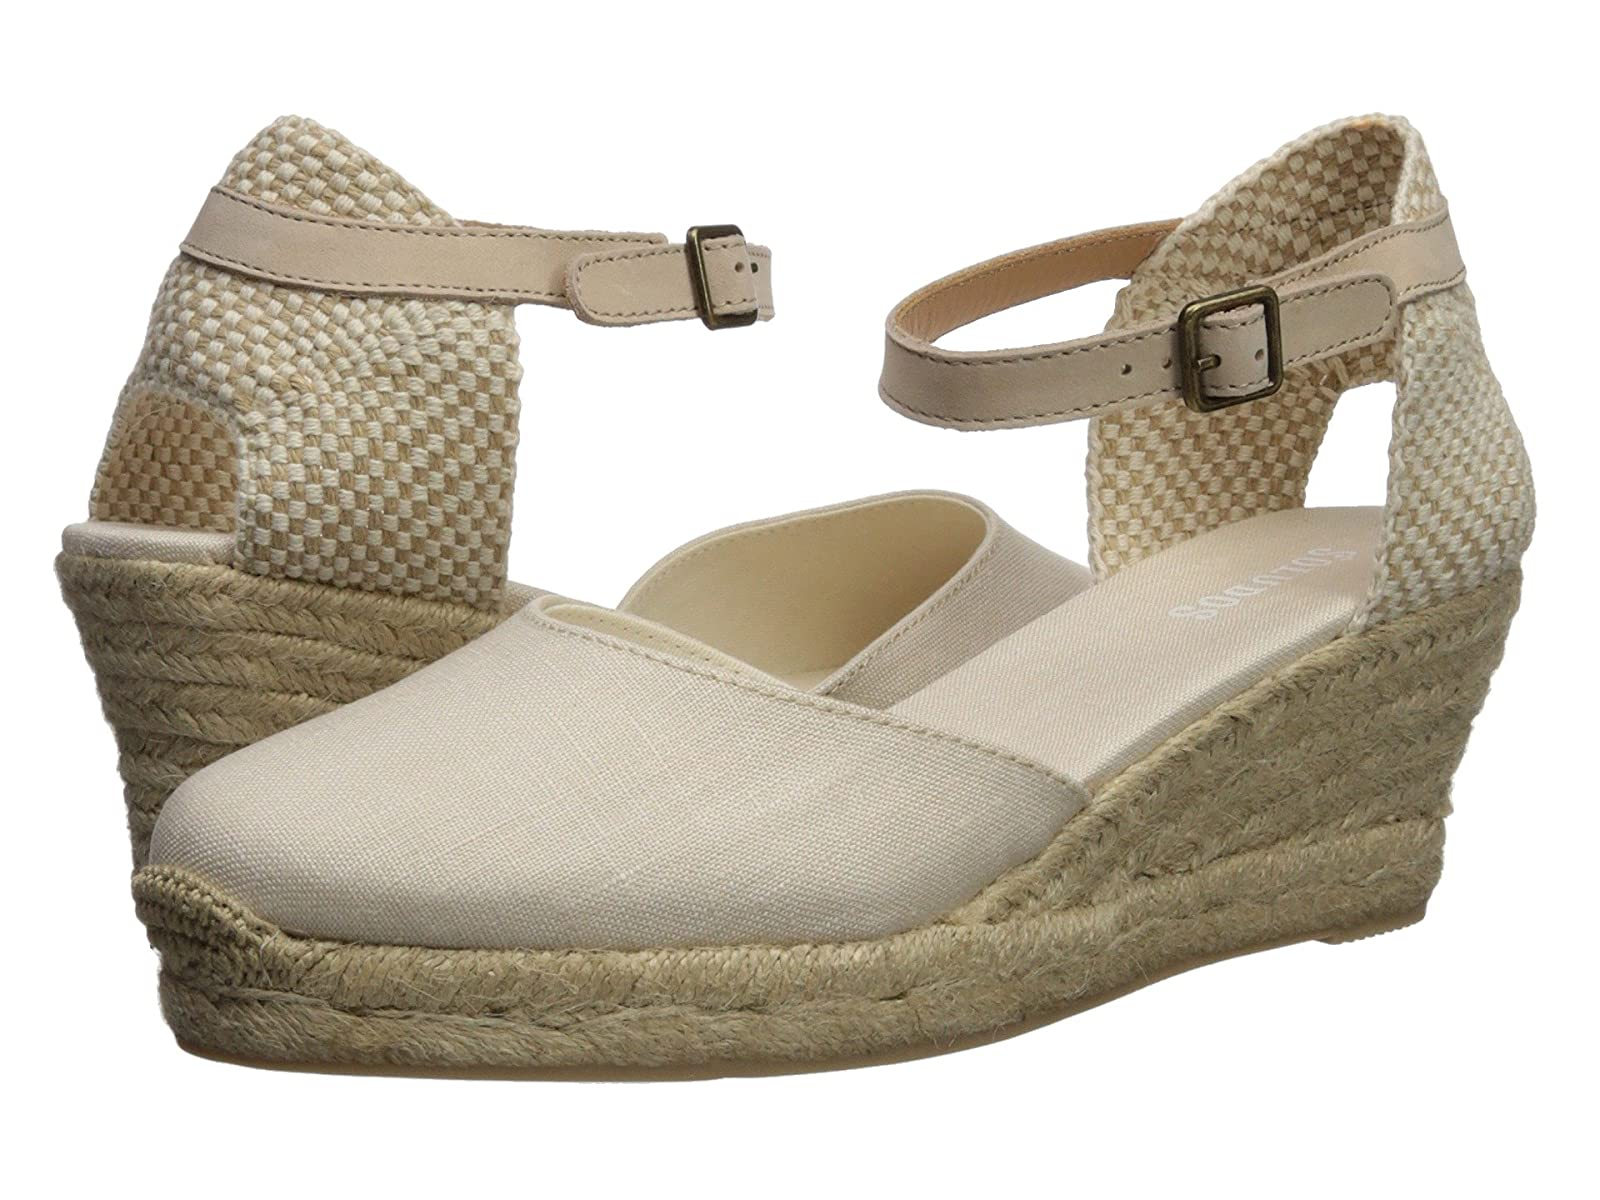 Soludos Closed-Toe Midwedge 70mmAtmospheric grades have affordable shoes